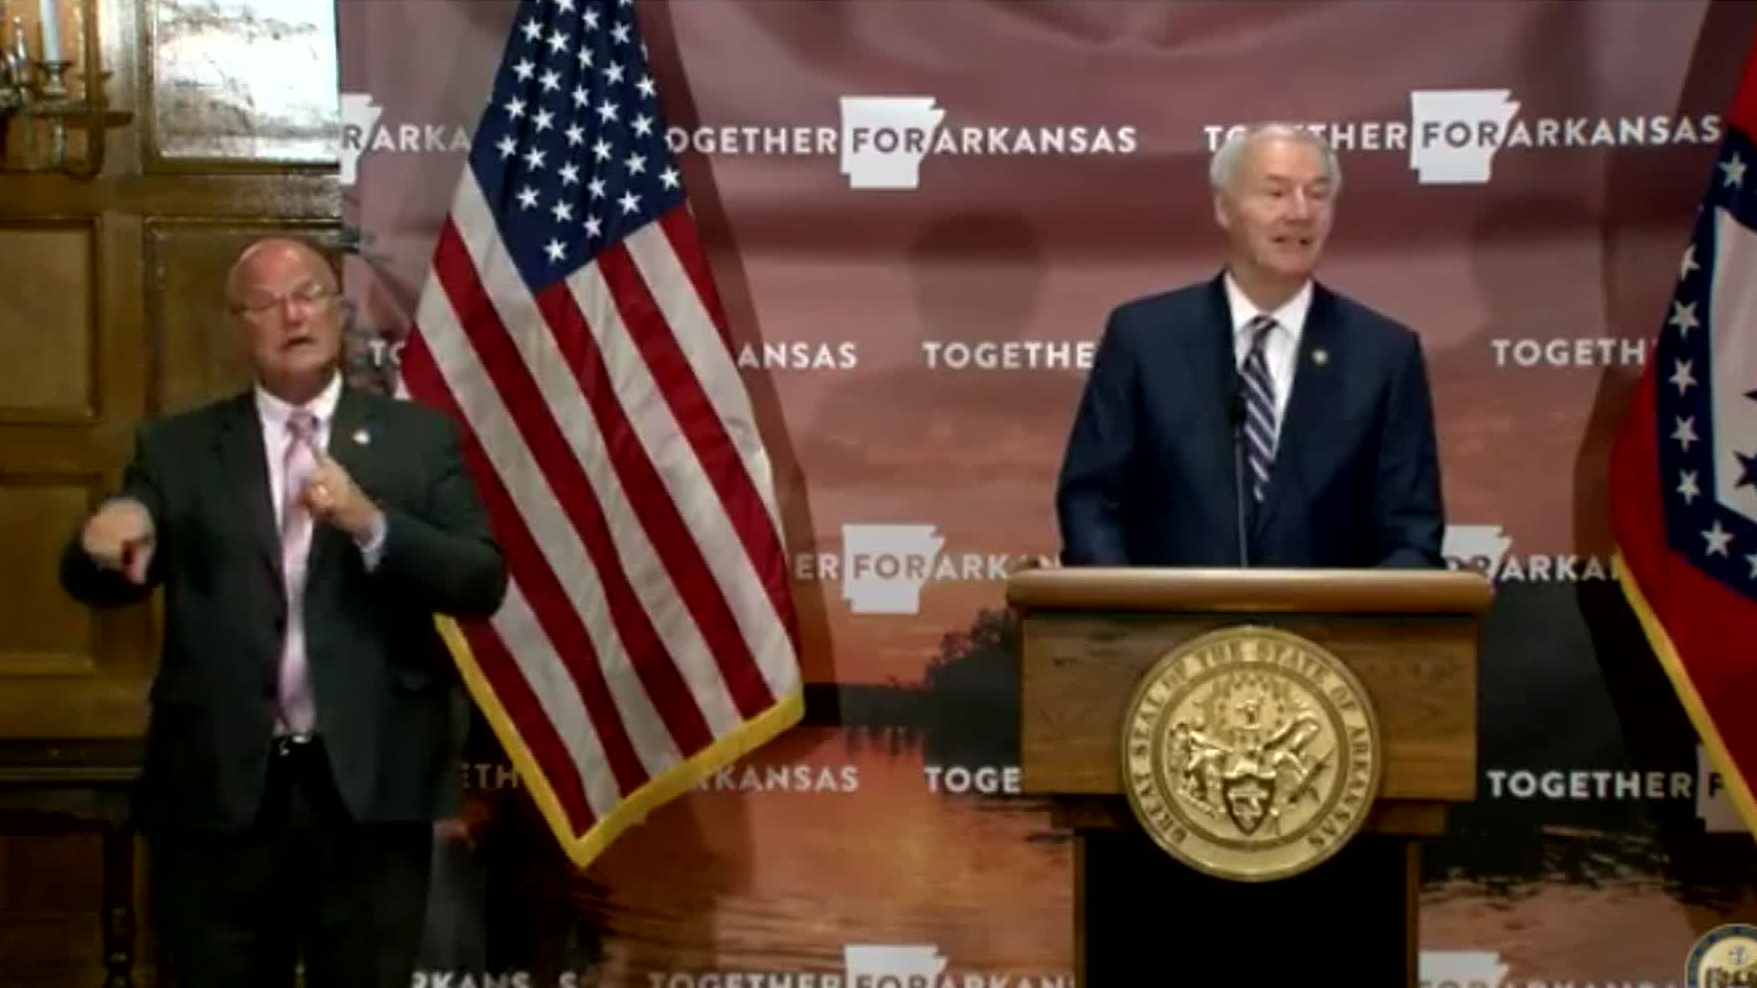 Arkansas Gov. Asa Hutchinson speaks during a press conference in Little Rock, Arkansas, on August 3.